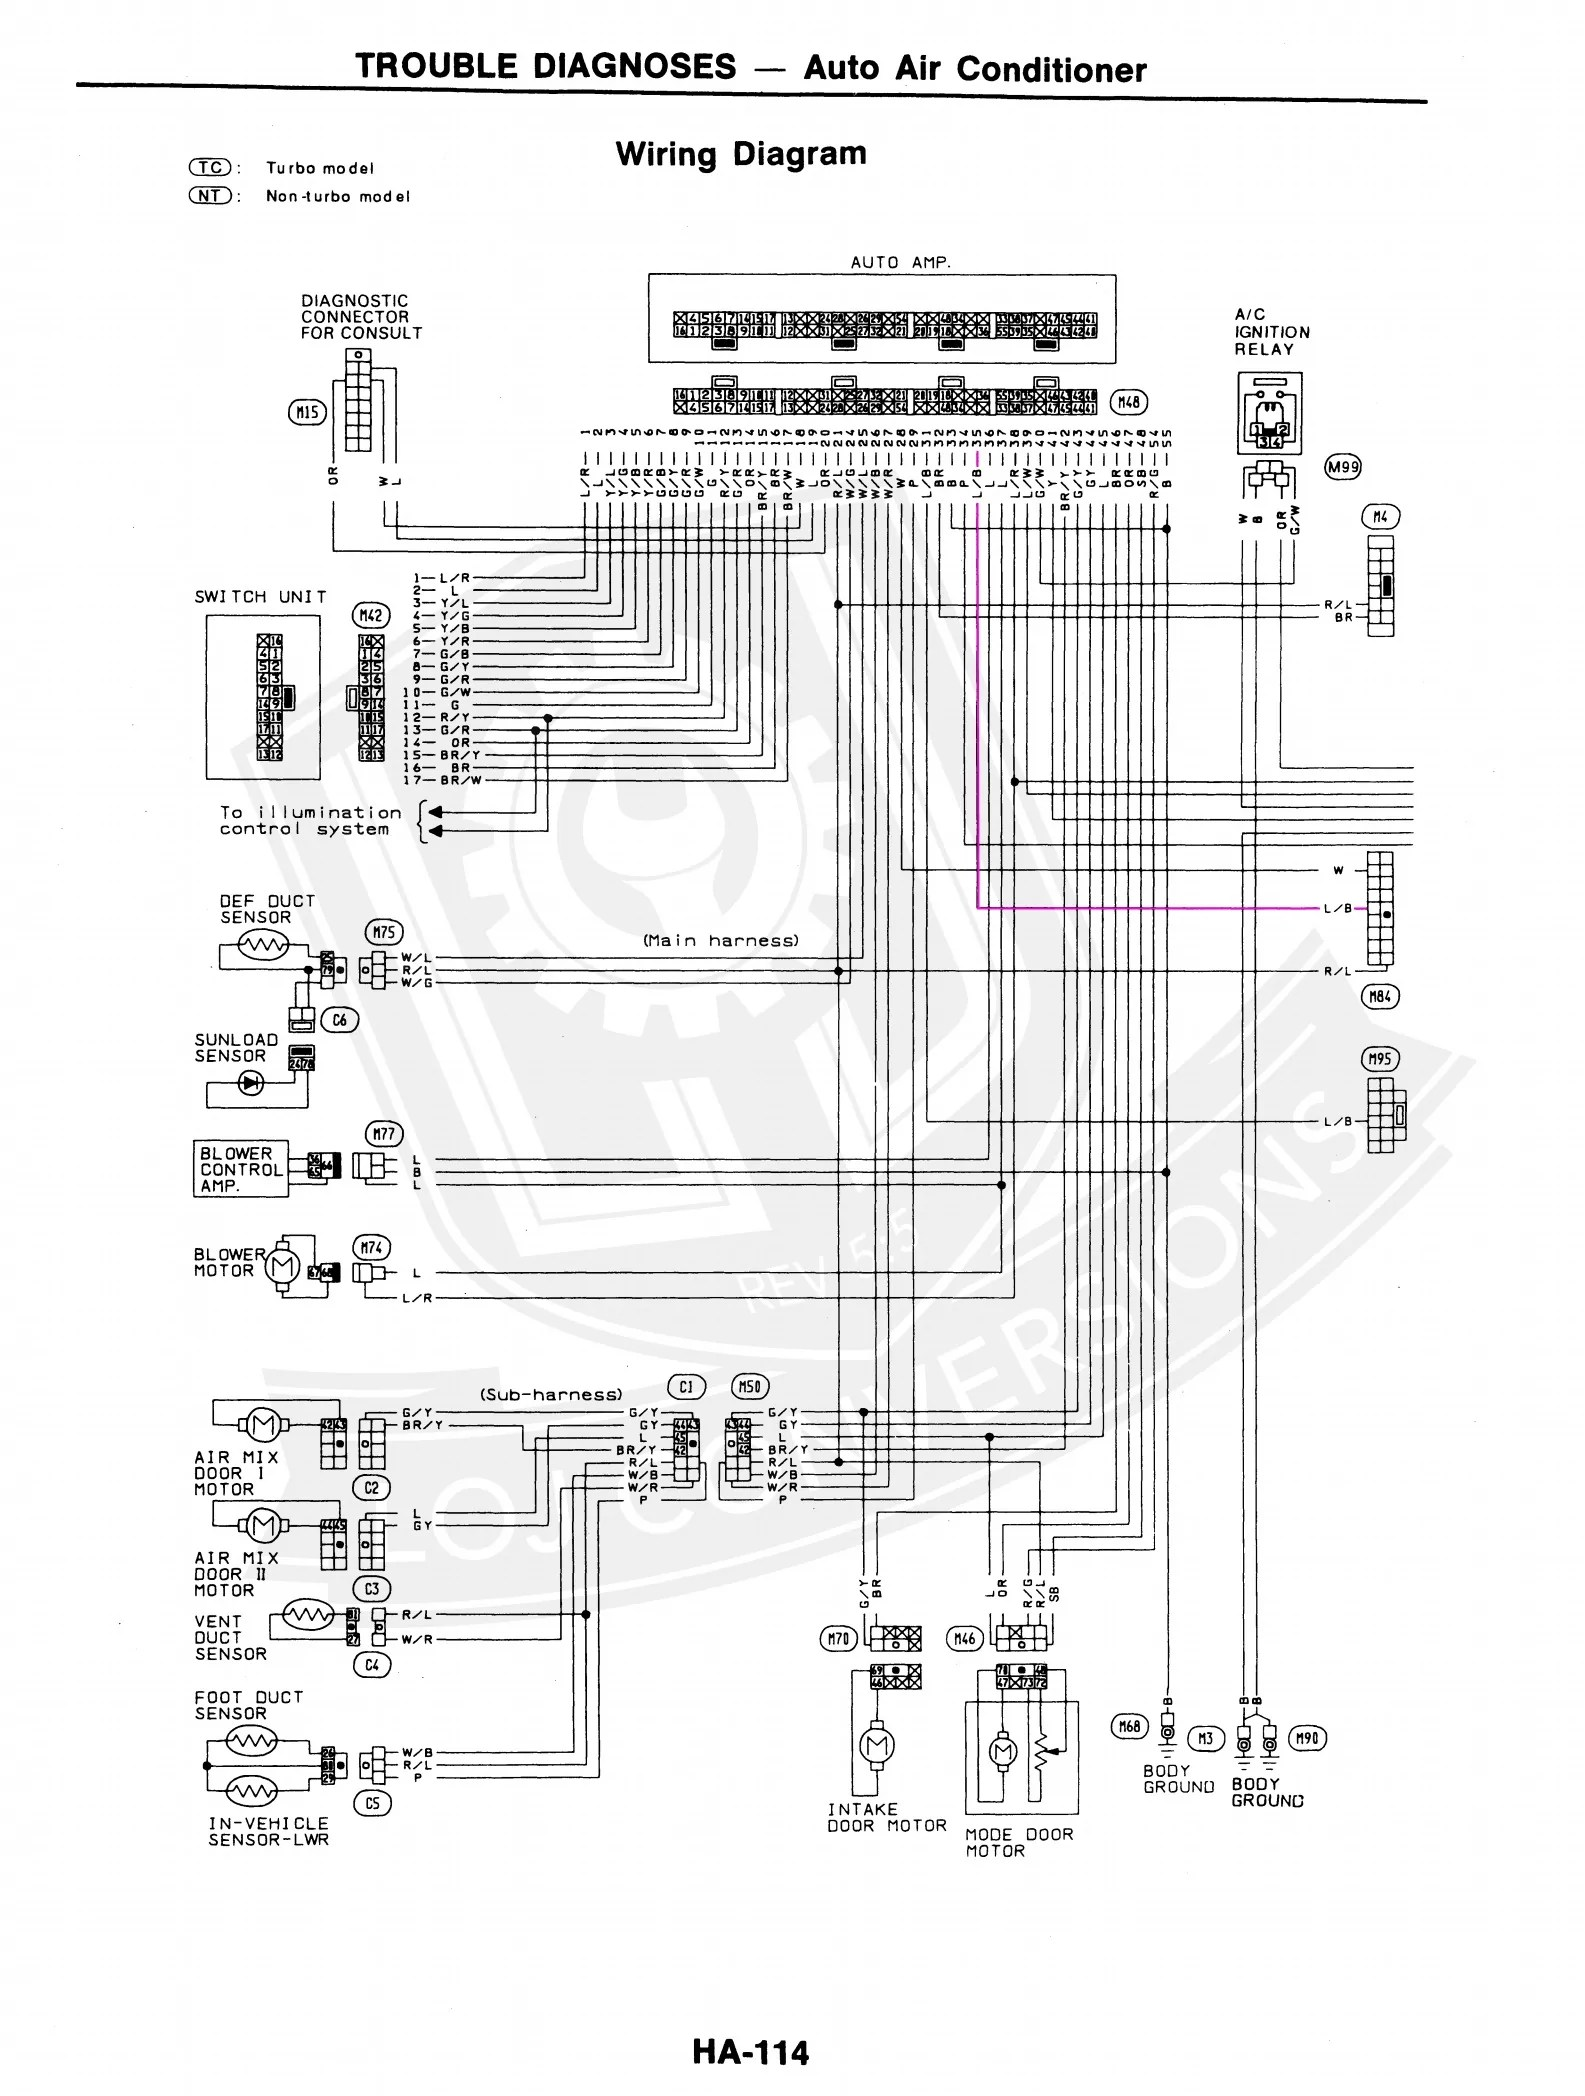 medium resolution of wiring diagram 1985 300zx wiring diagram compilation 1985 nissan 300zx wiring harness 1985 circuit diagrams